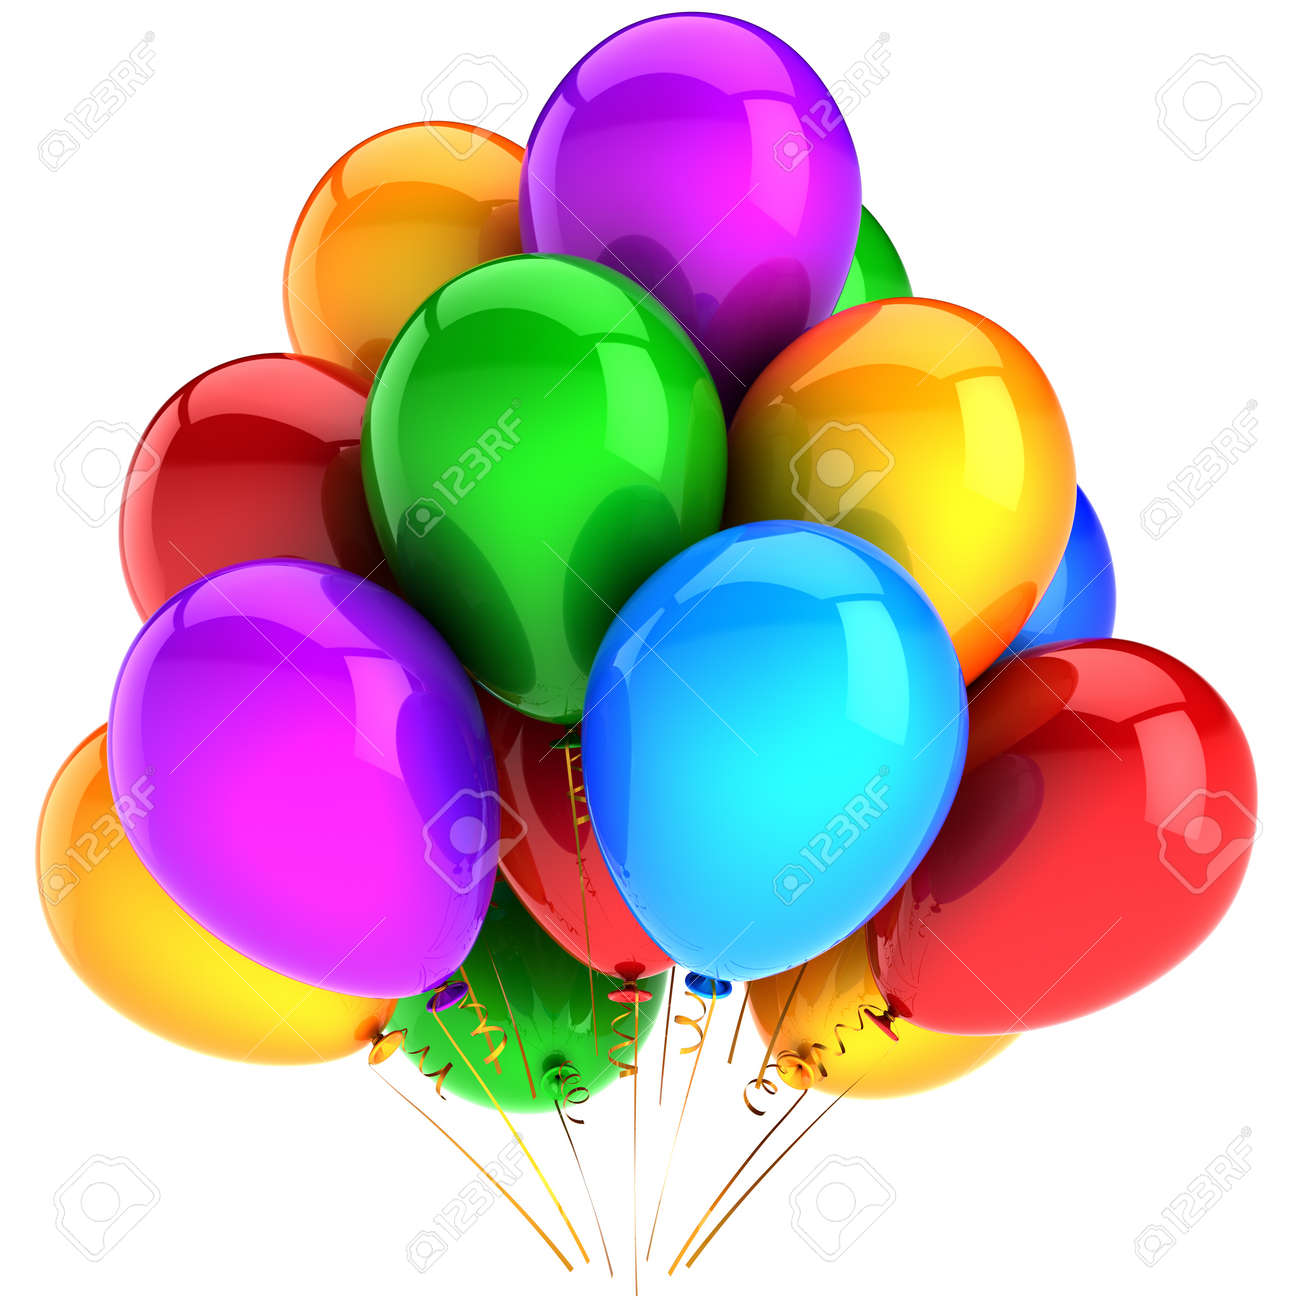 Party balloons multicolor and shiny. Modern beautiful celebration  decoration. Birthday joyful happiness emotions abstract